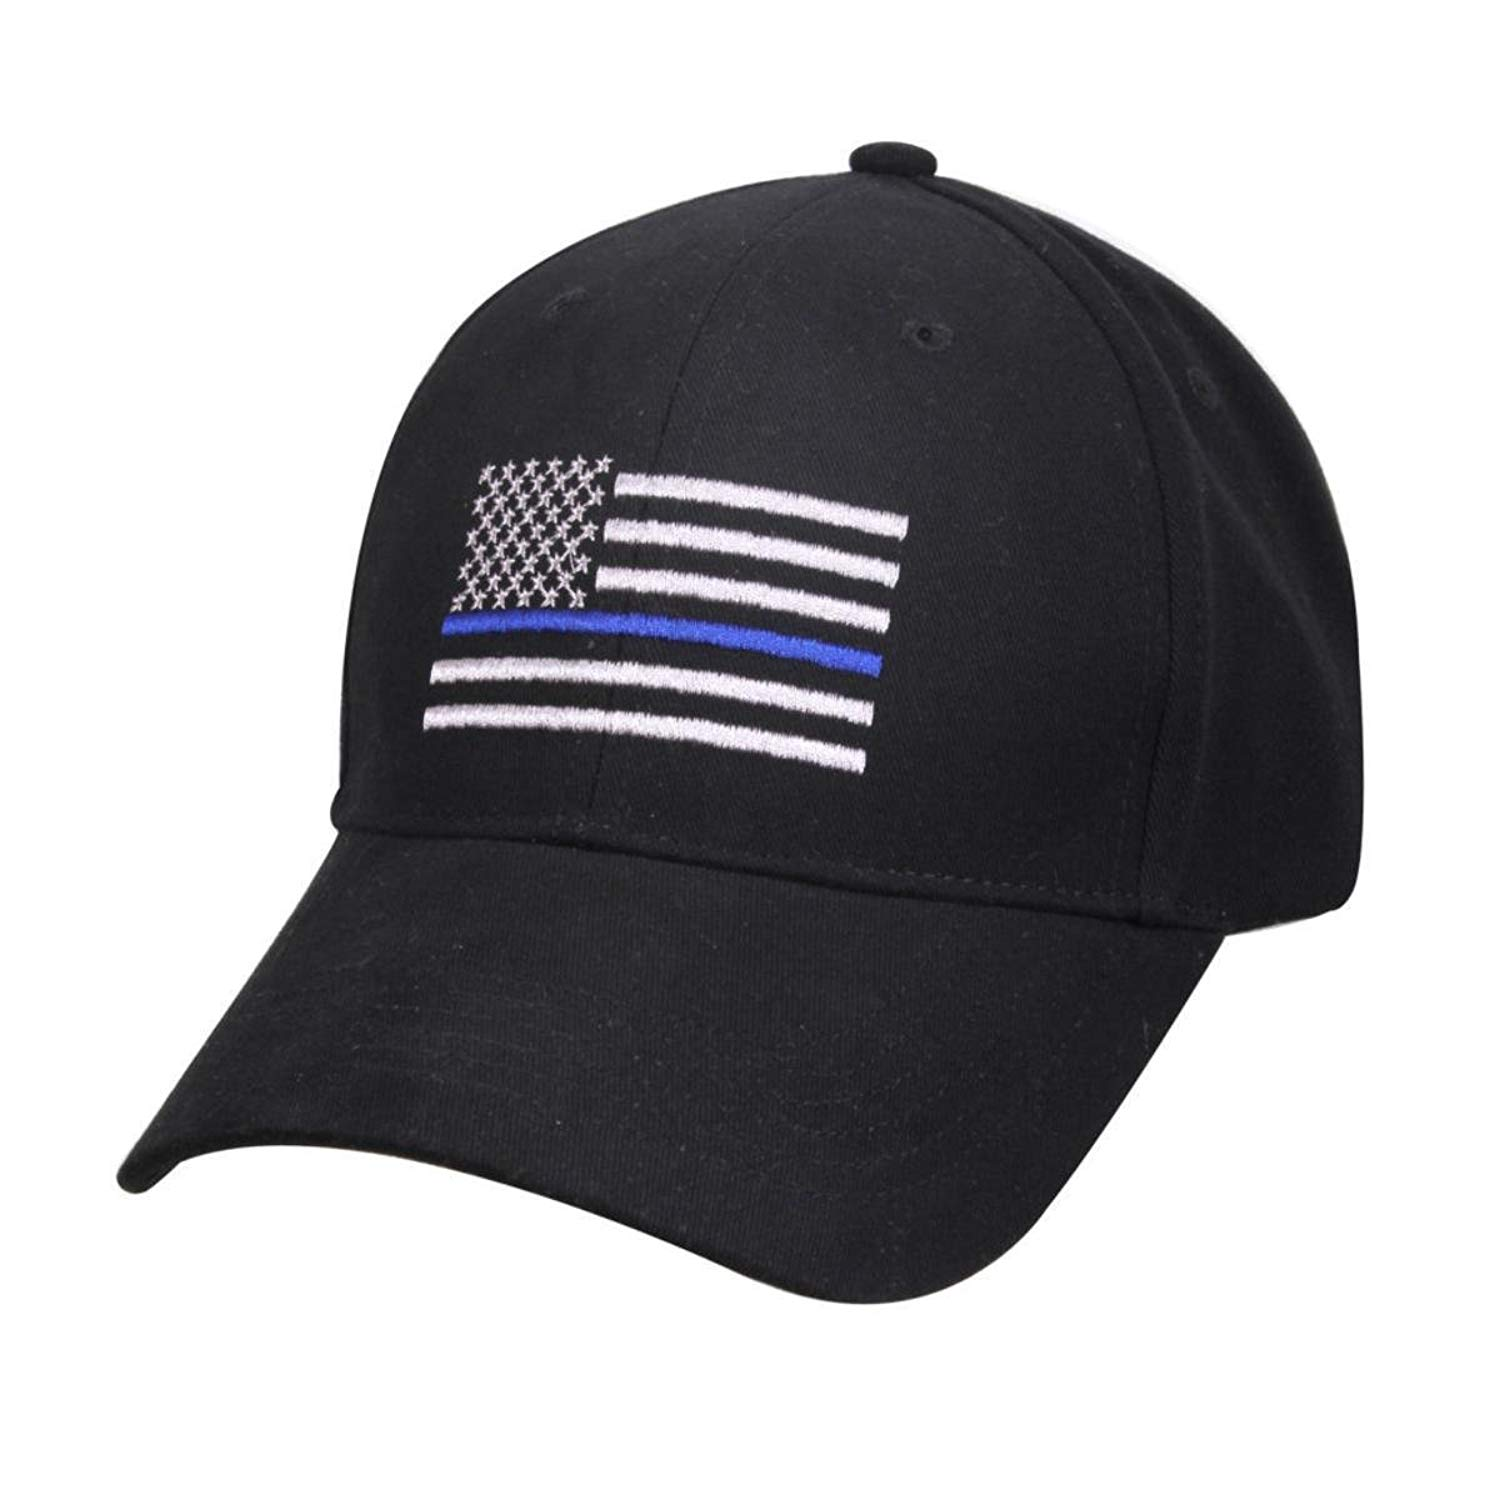 17cdba58774 Get Quotations · Lot of 6 Thin Blue Line USA Police Memorial American Black  Embroidered Cap Hat